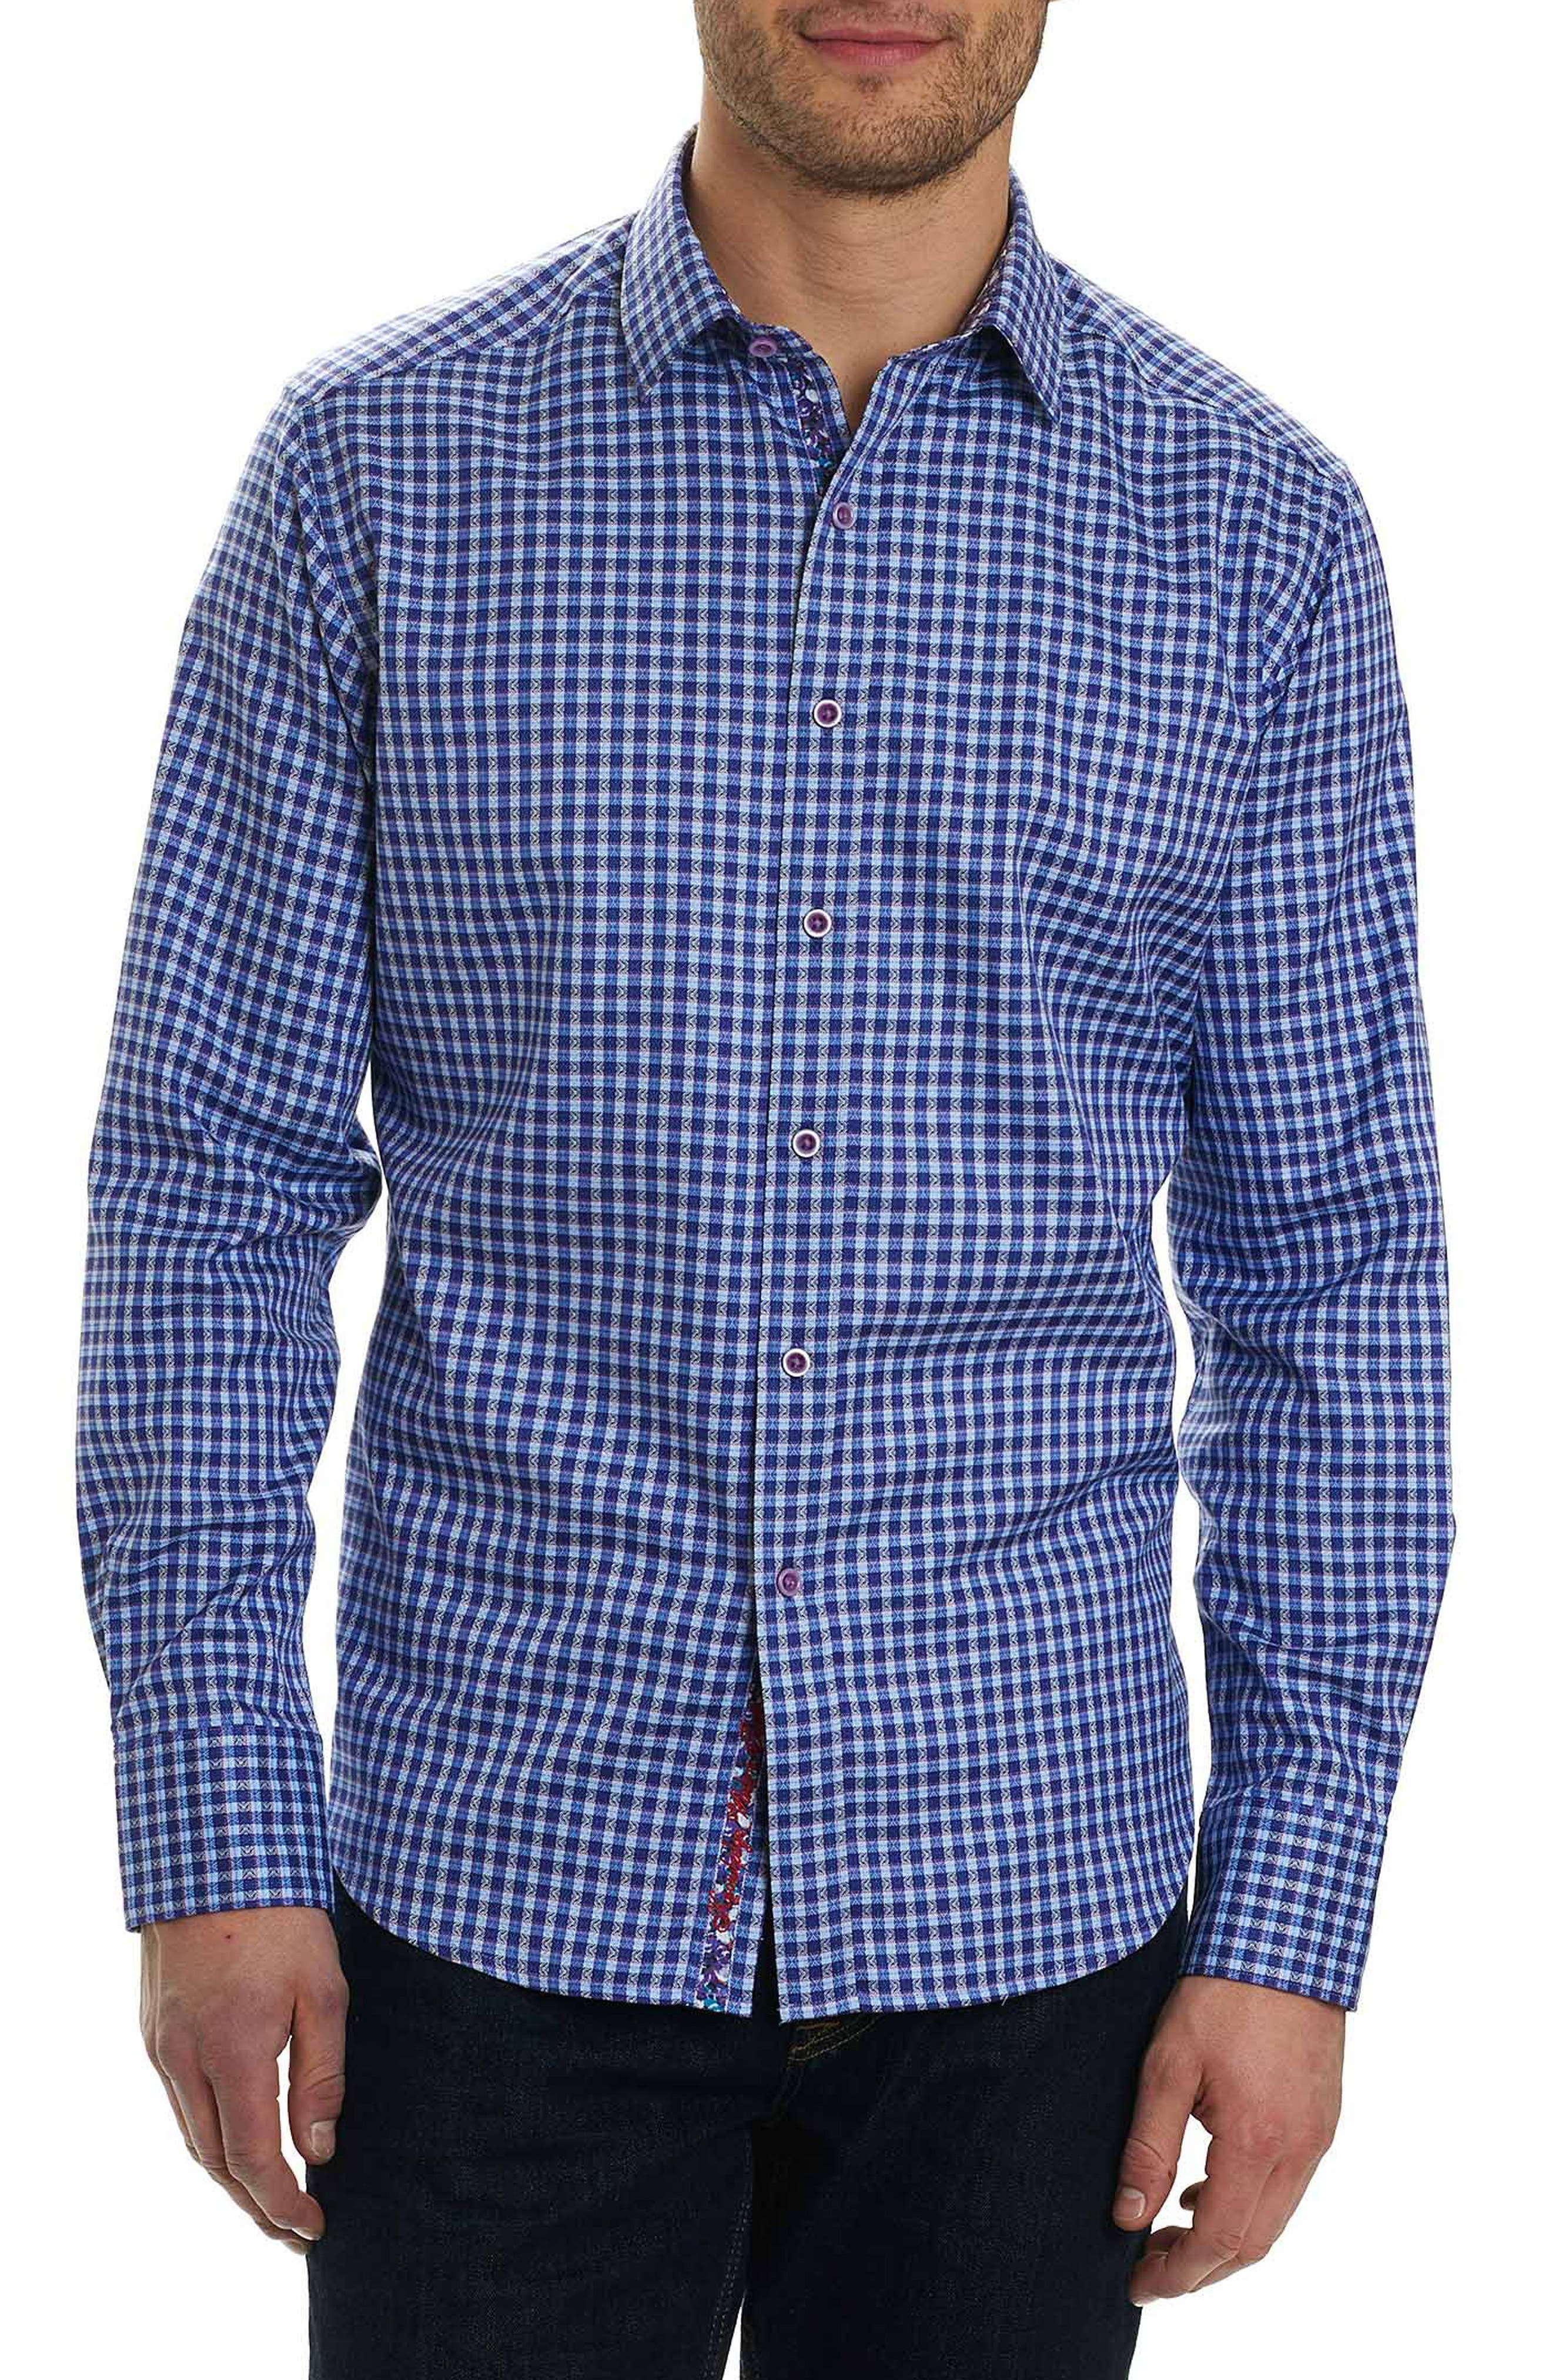 Matira Classic Fit Patterned Gingham Sport Shirt,                         Main,                         color, Purple